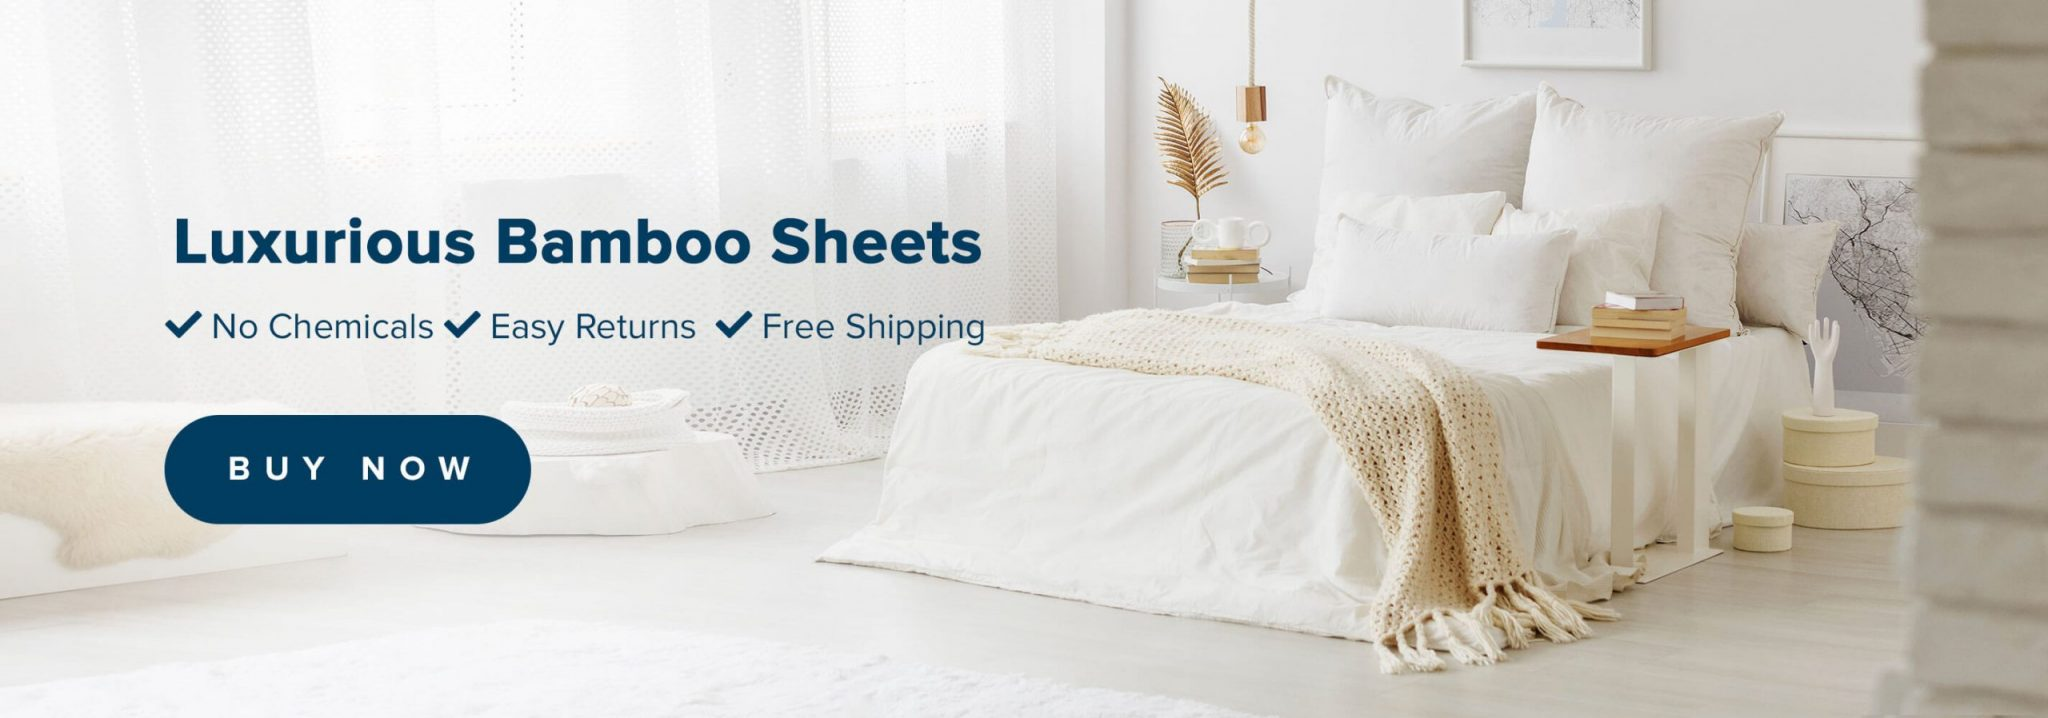 Luxurious Bamboo Sheets Banner 1 scaled